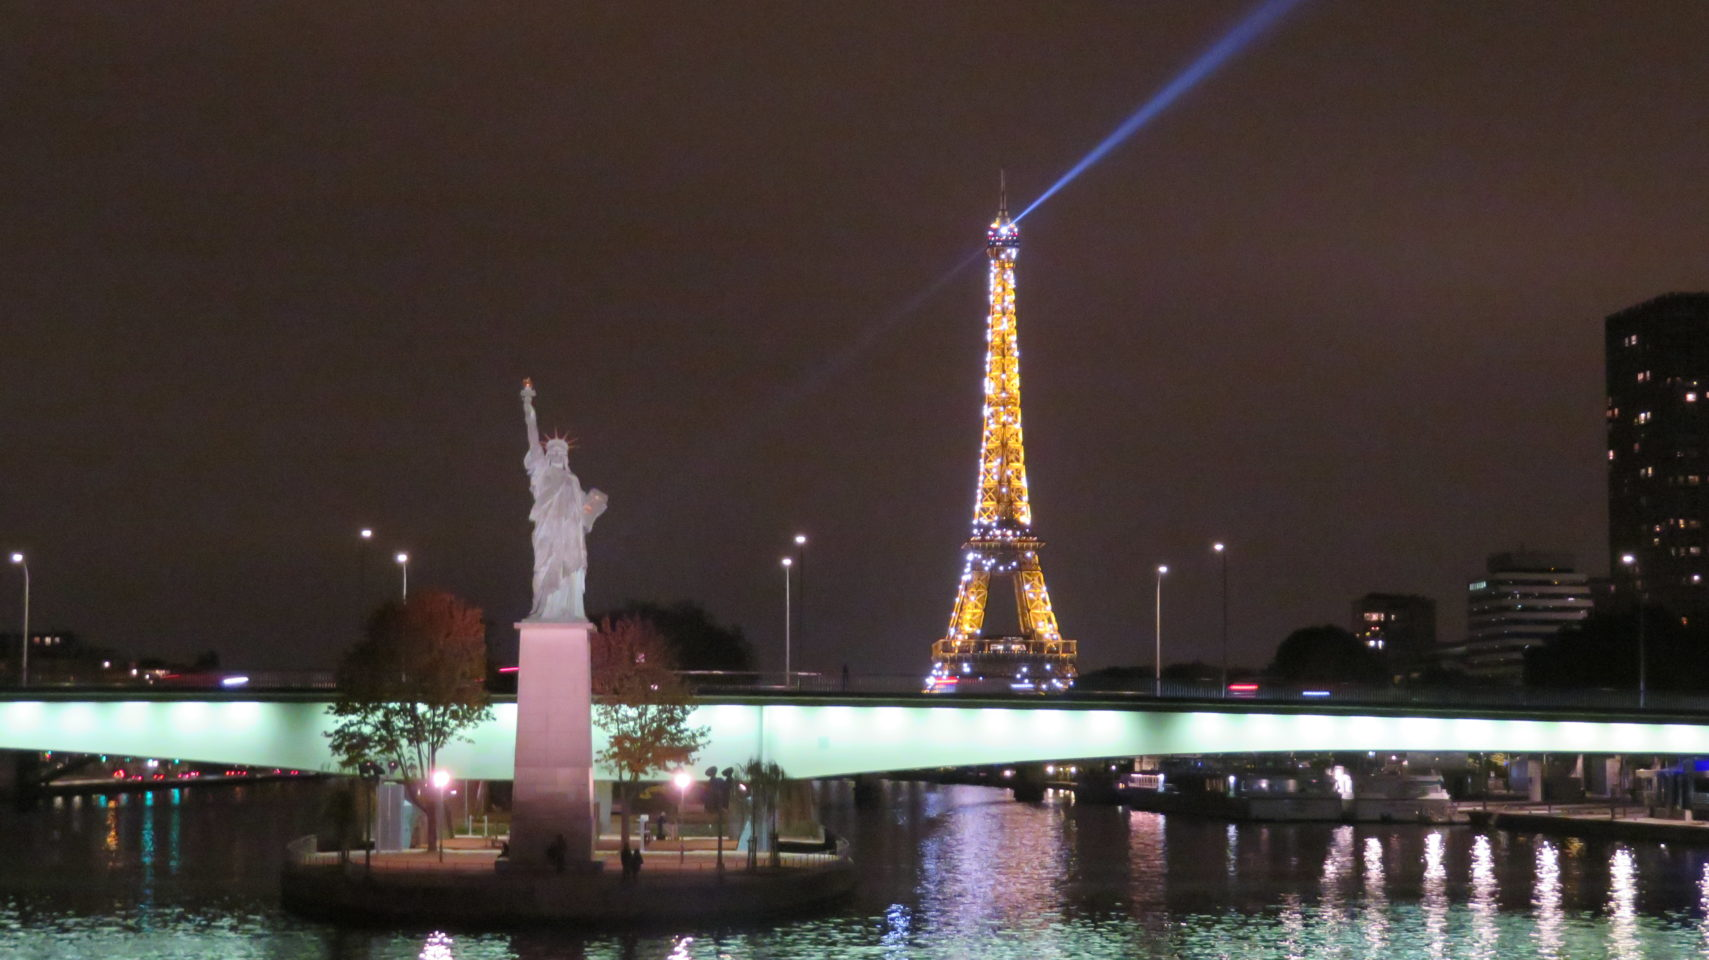 Statue of Liberty and Eiffel Tower at night in Paris, France (Paris and Normandie AMAWaterways Cruise)